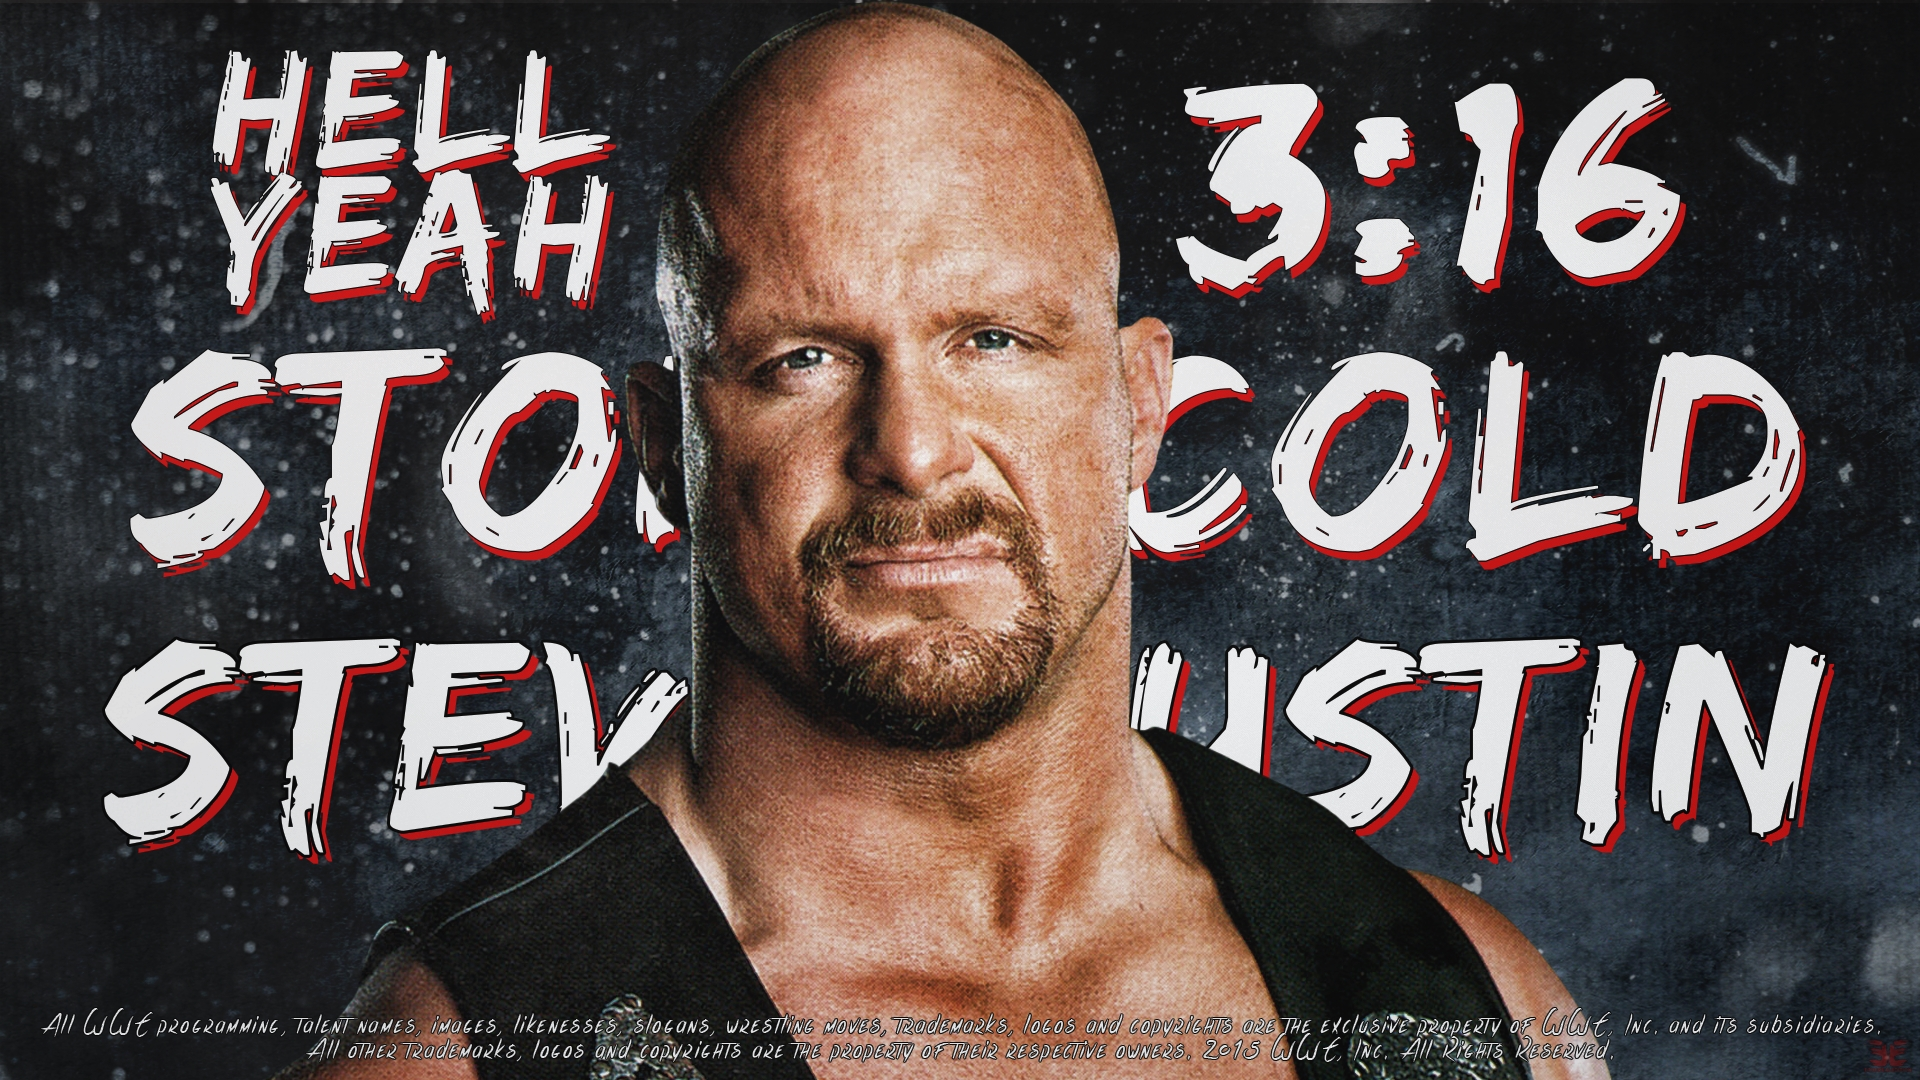 Stone Cold Steve Austin : Stone cold wallpapers free download